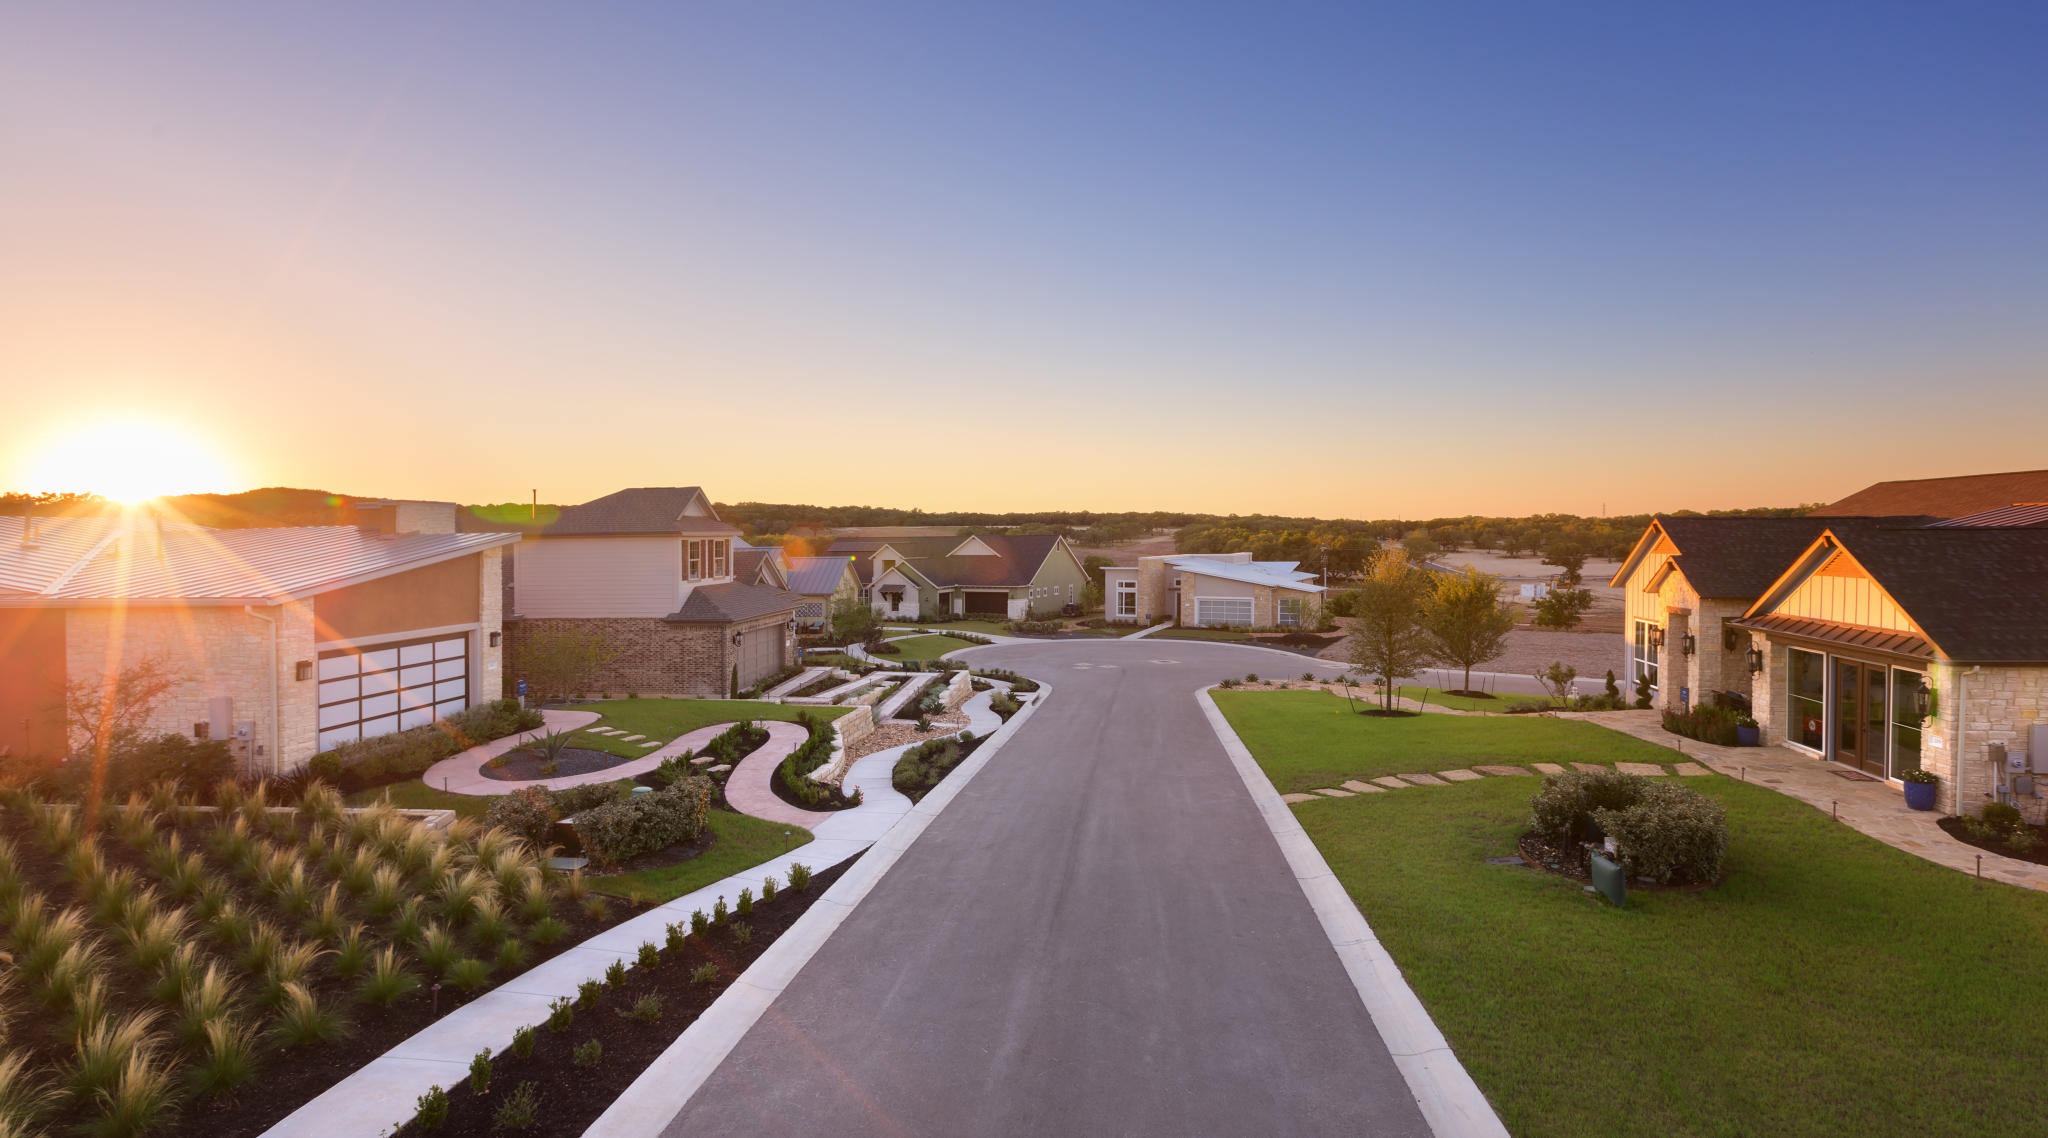 Kissing Tree by Brookfield Residential New Homes for Sale - San Marcos, TX  - 15 Photos | Trulia